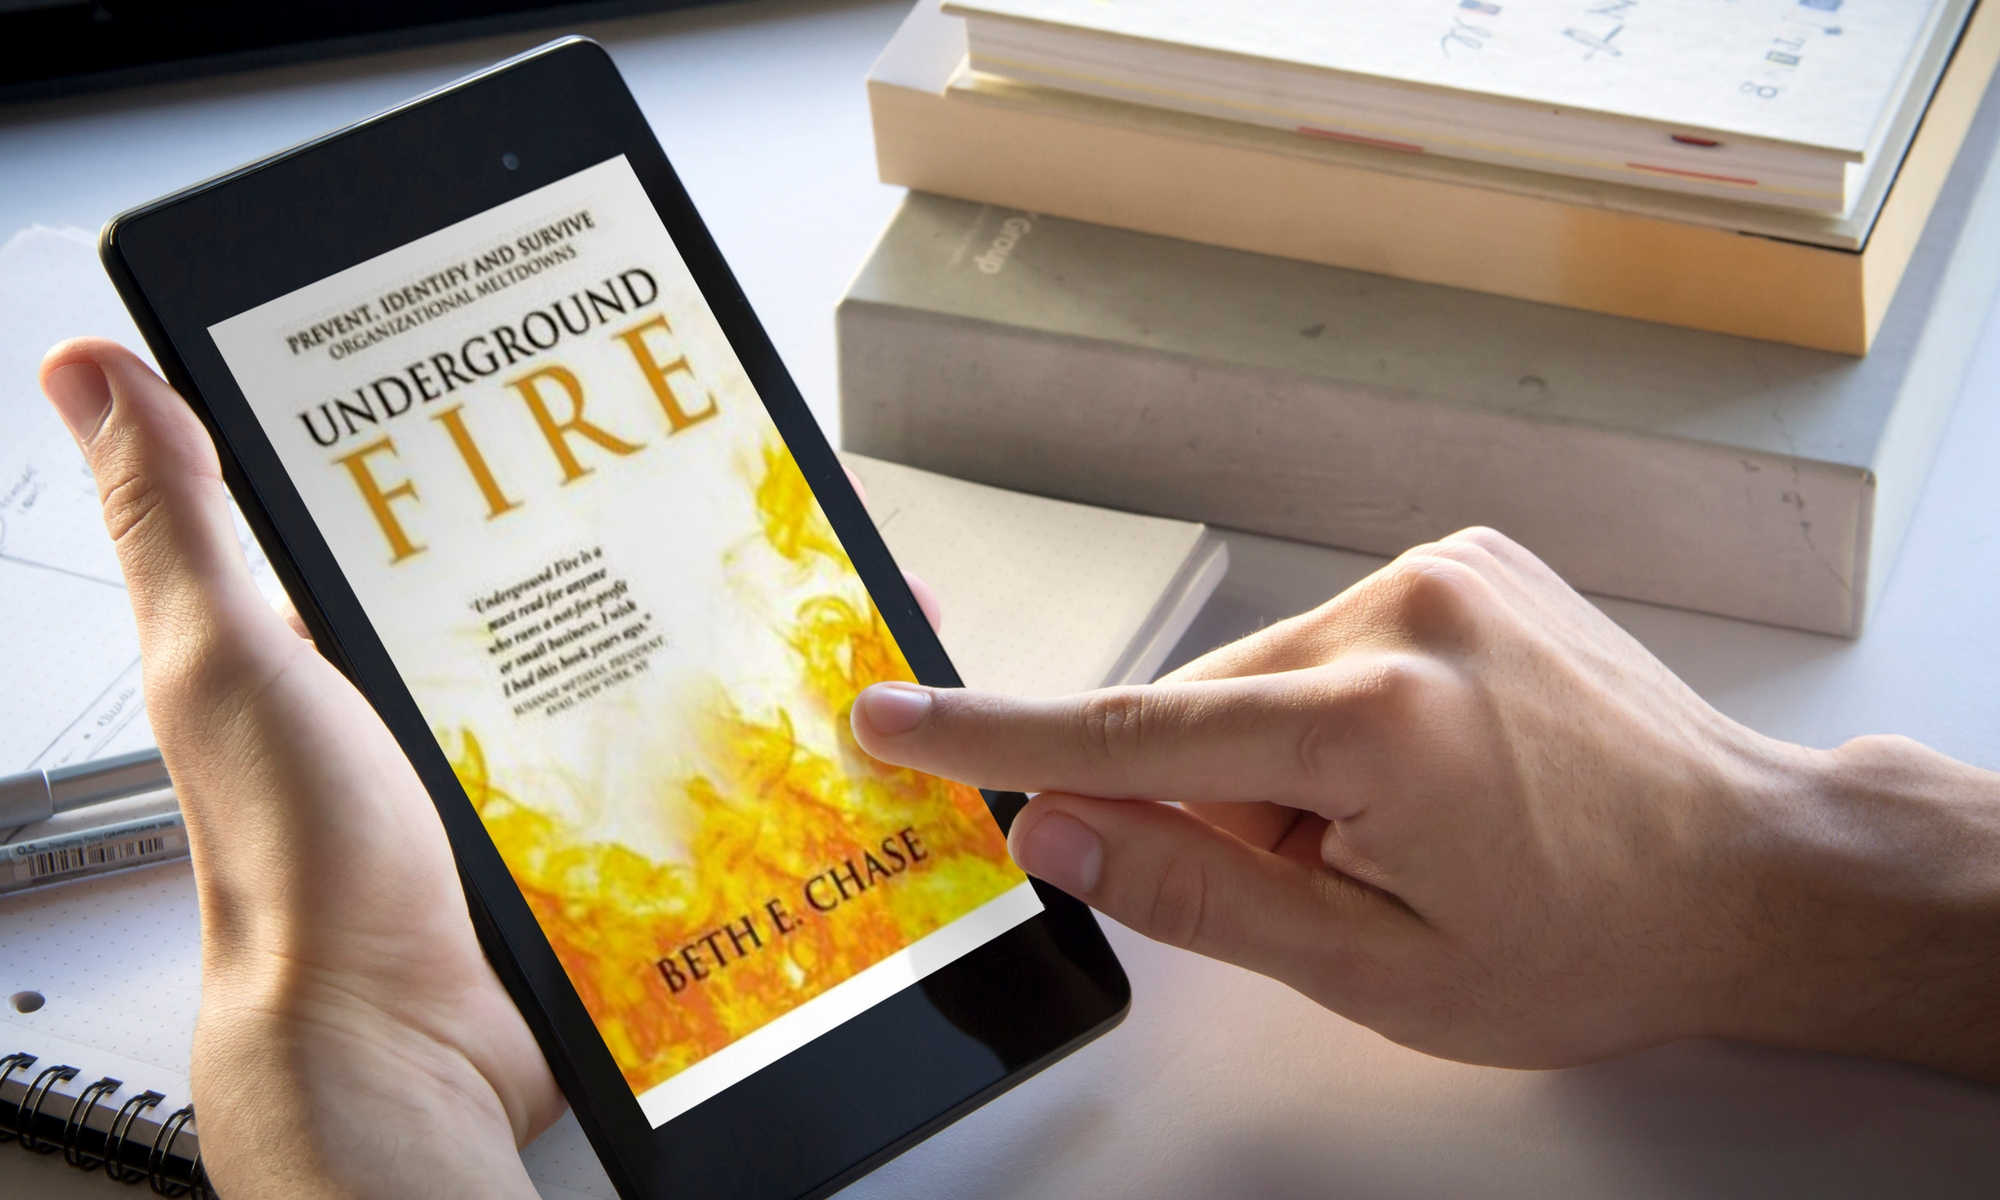 Underground Fire book is on Kindle